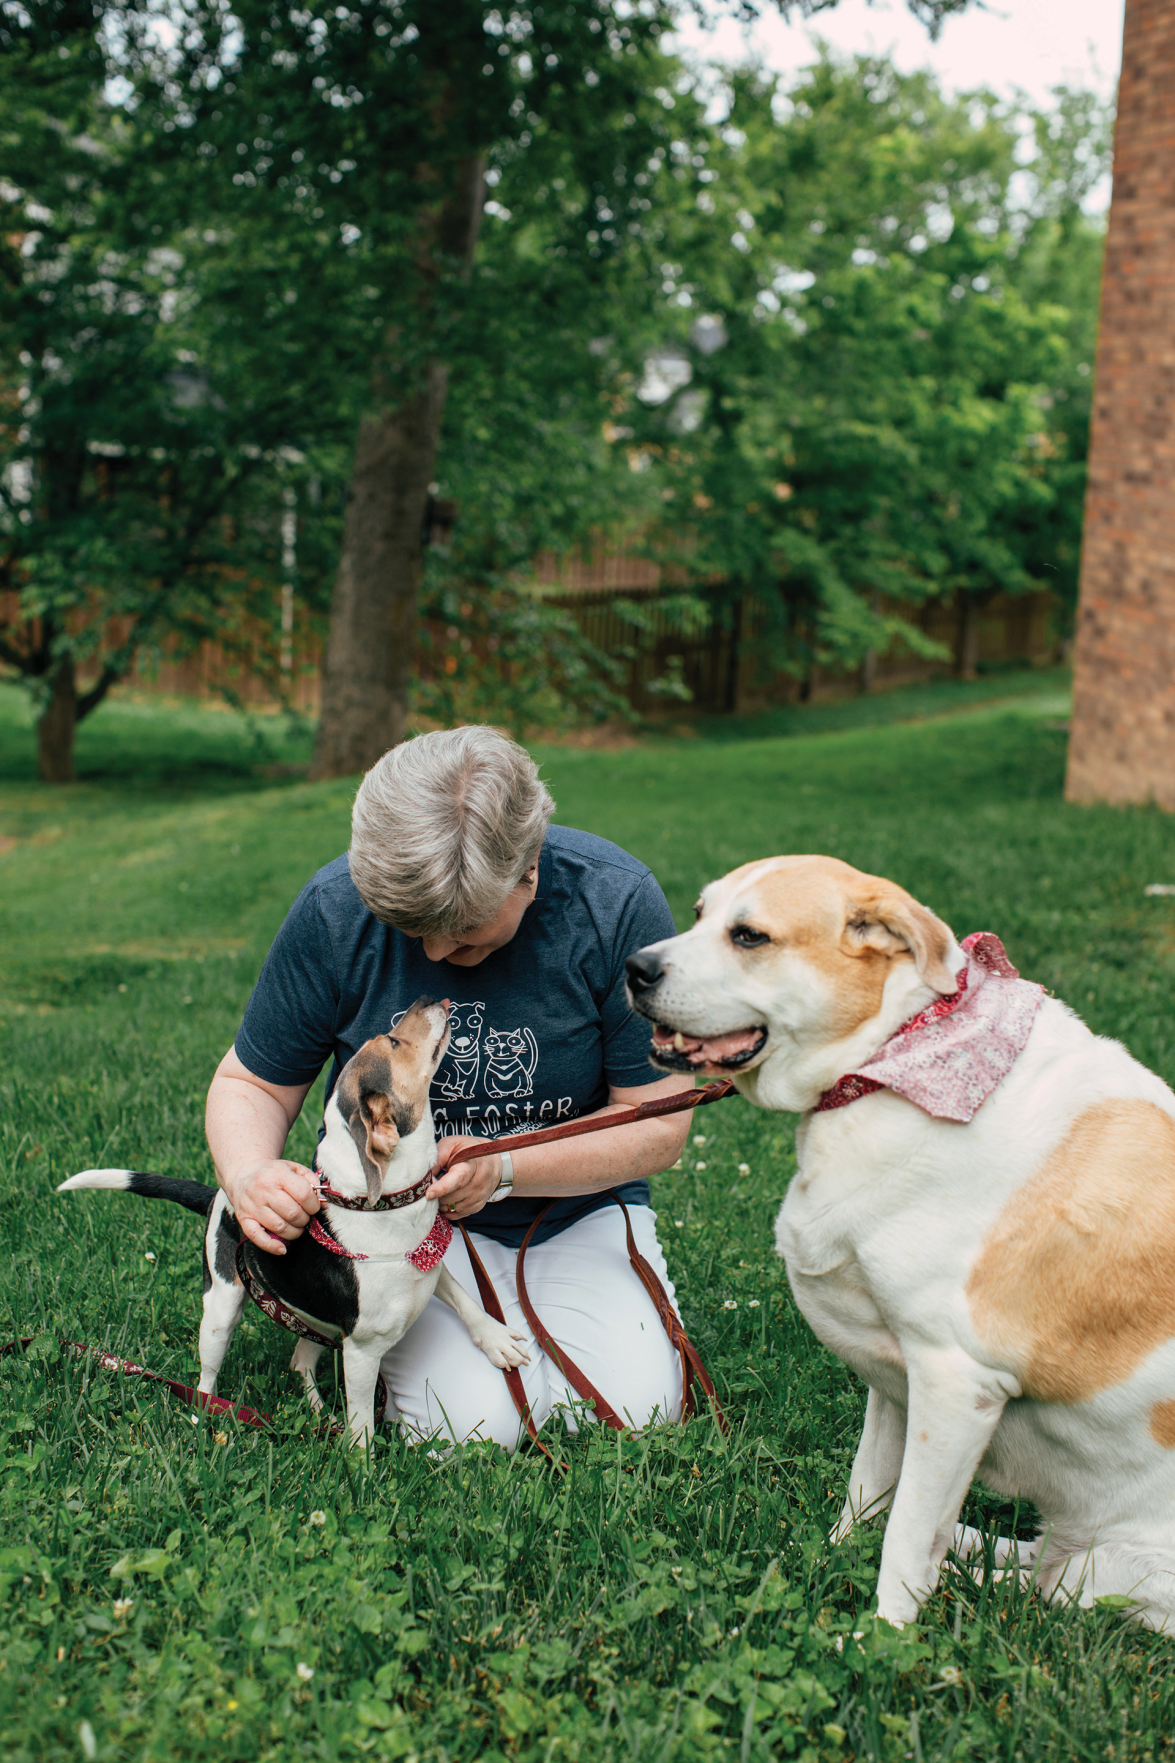 The Pet Issue 2020: Let Your Love Grow